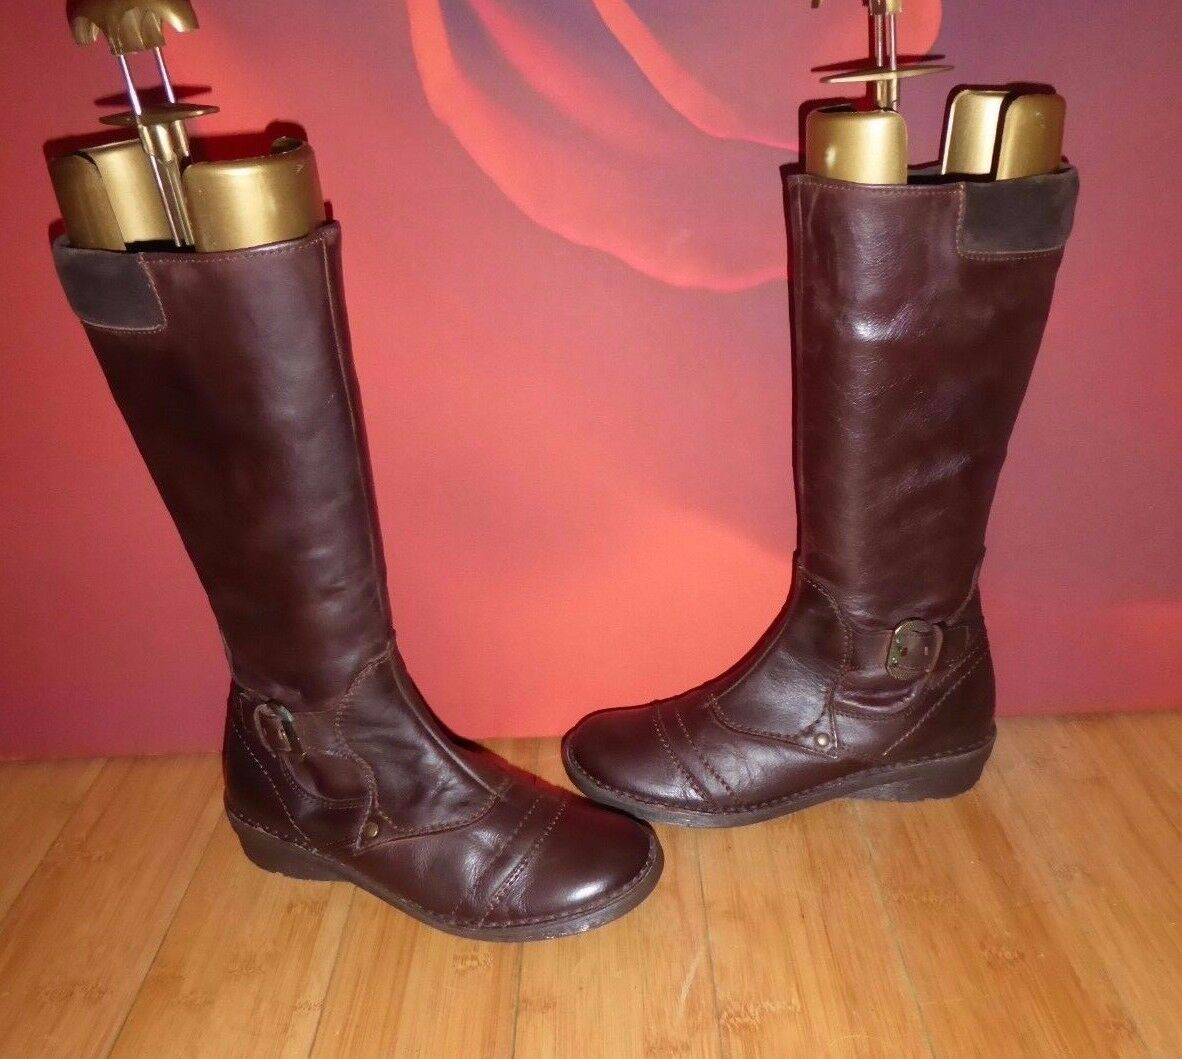 a51dd00f3aa45 SUPERB SEASIDE BROWN LEAHER STYLE WEDGE BOOTS UK 4 EU 37 5 RIDING ...